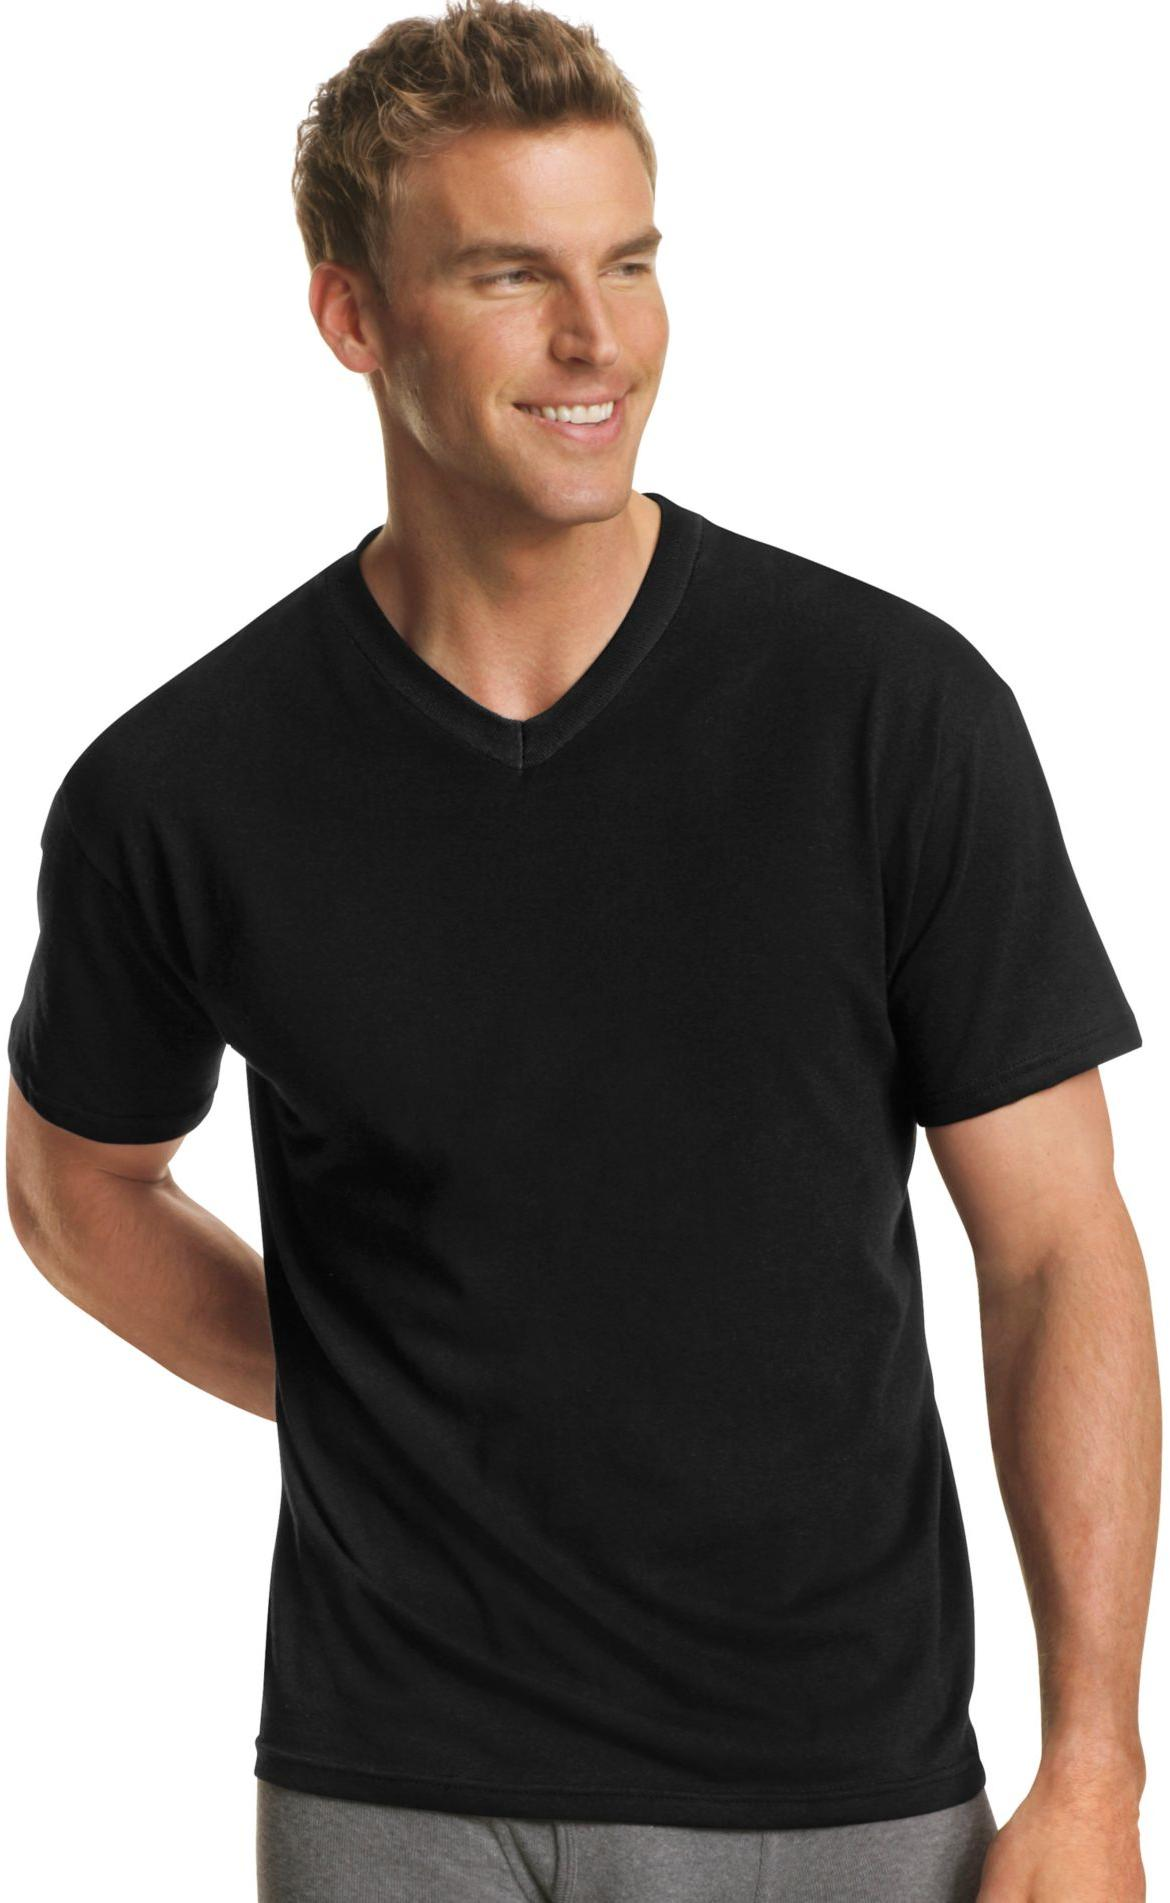 Find great deals on eBay for undershirt v neck. Shop with confidence.